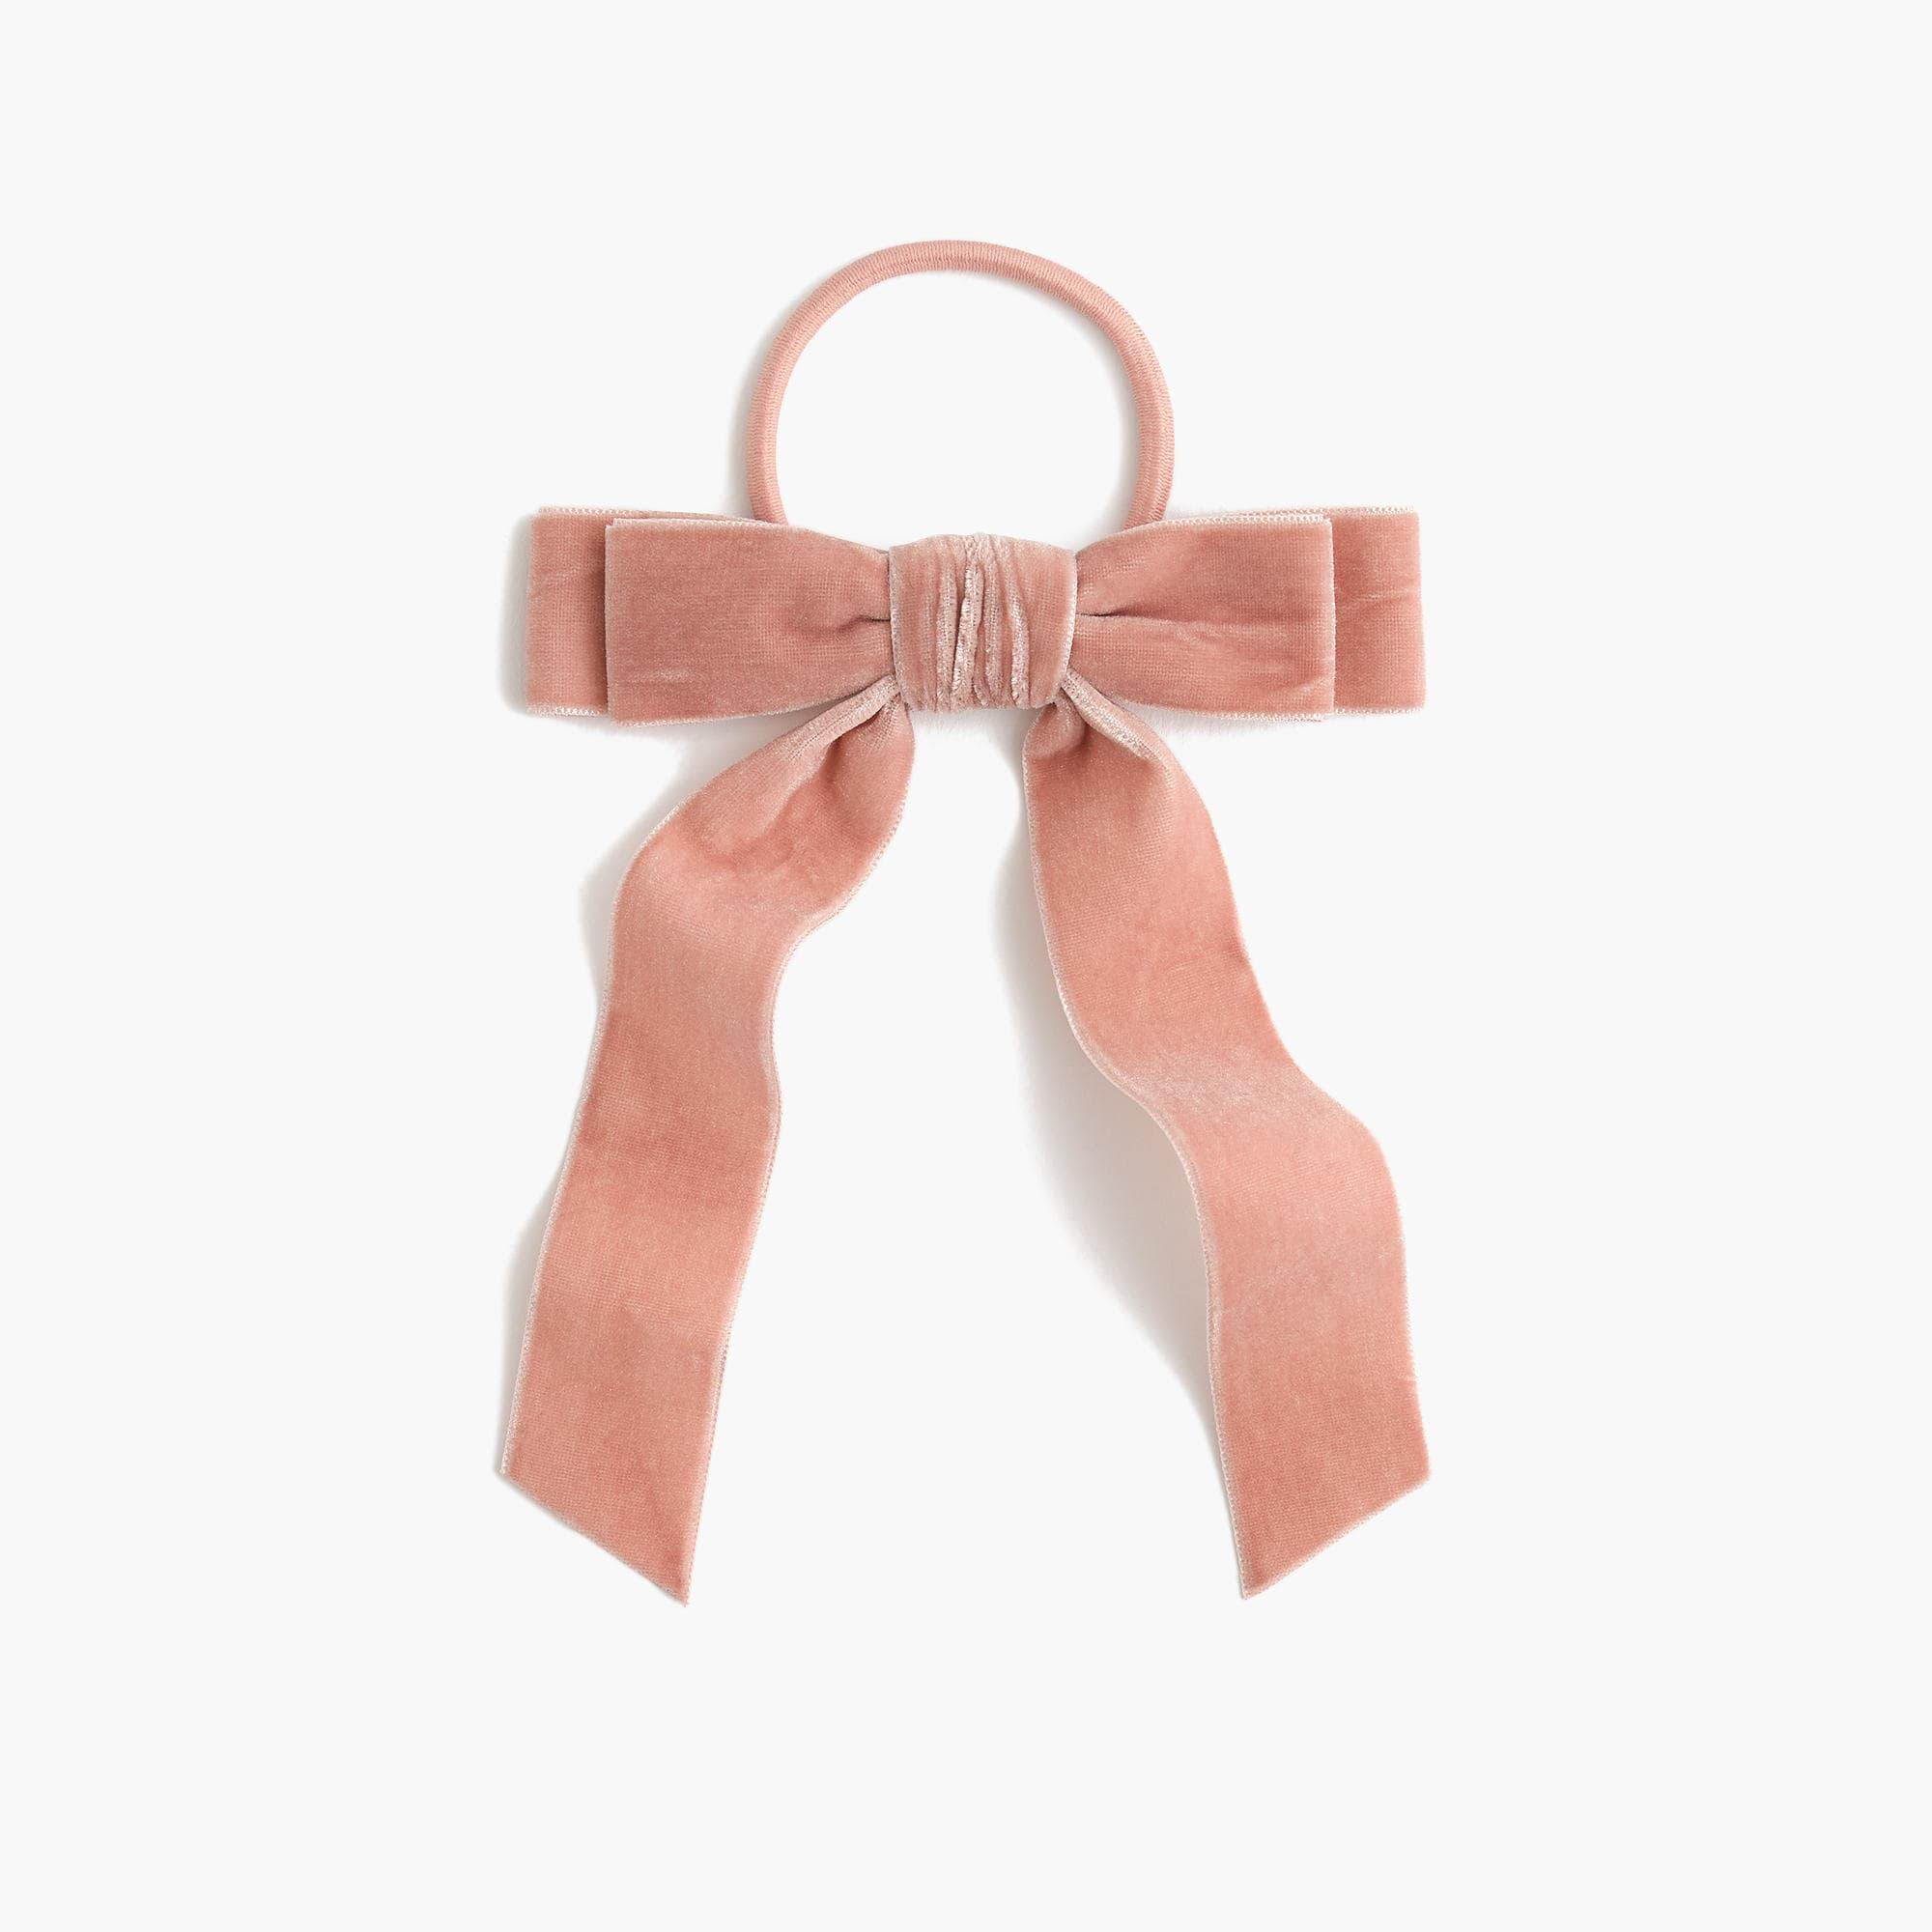 Blush Velvet Hair Tie - Weekly Picks by North Carolina style blogger Glitter, Inc.